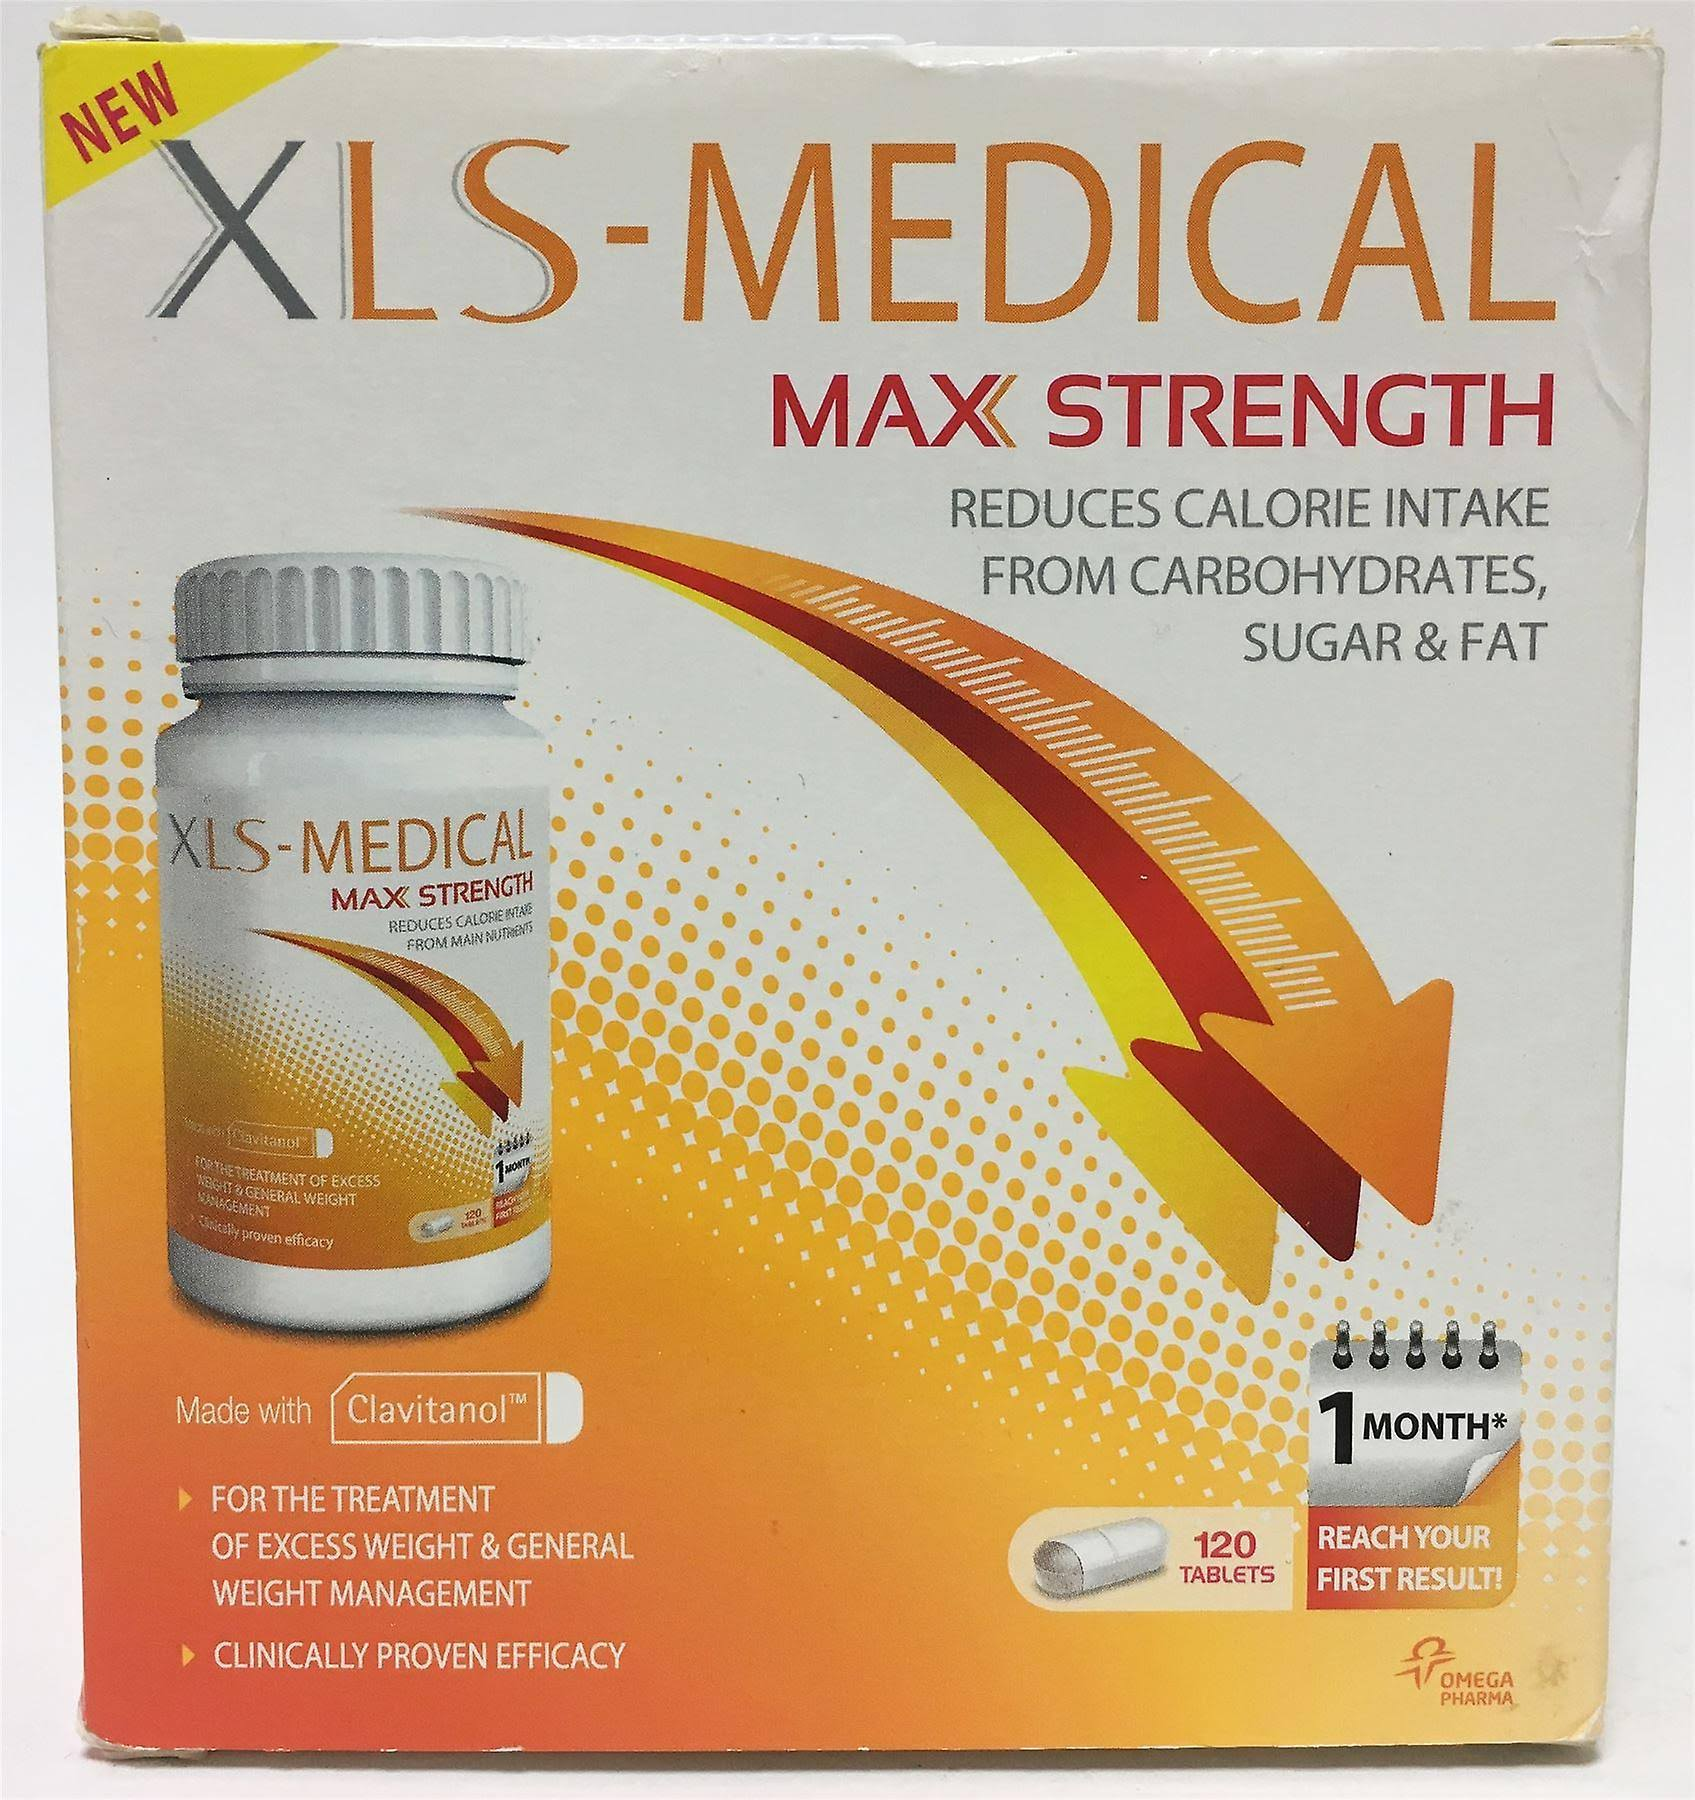 XLS-Medical Max Strength Diet Pills for Weight Loss - 120 Tablets